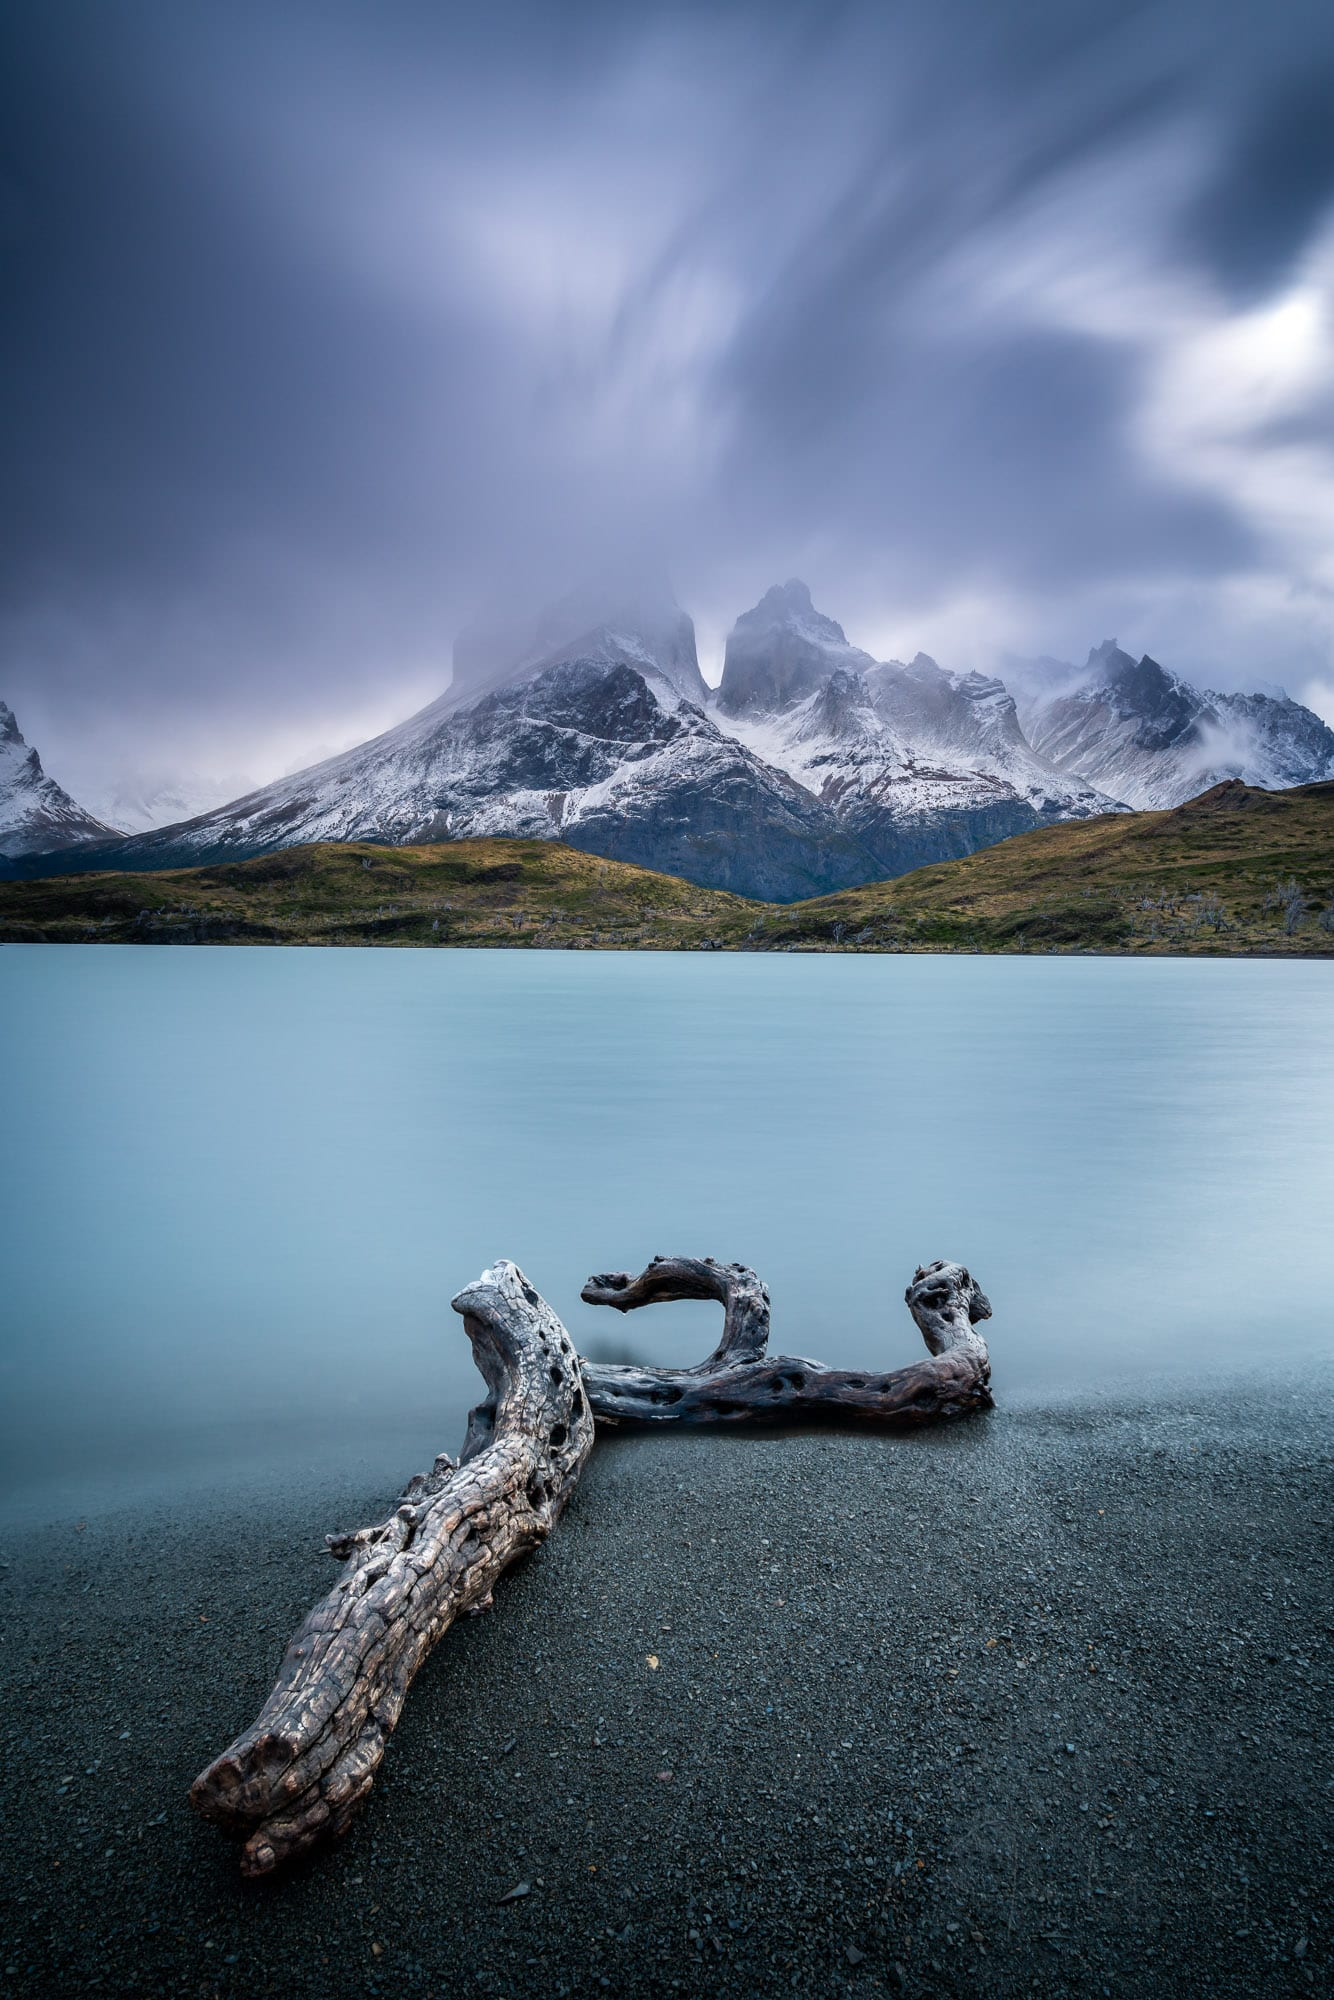 Los Cuernos mountains, Torres del Paine National Park